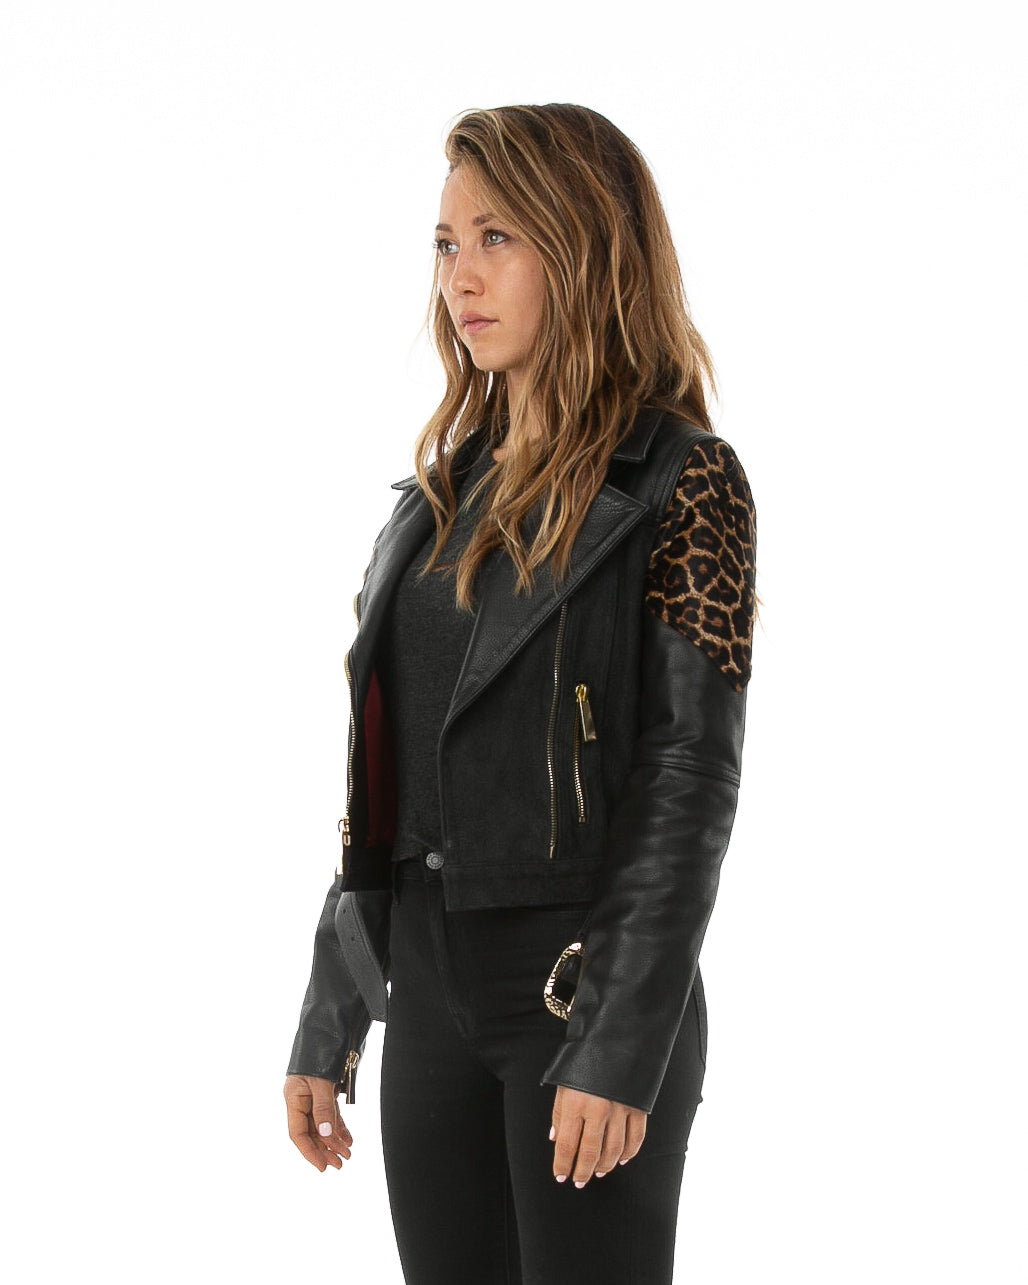 Side of female model wearing Papi leather jacket